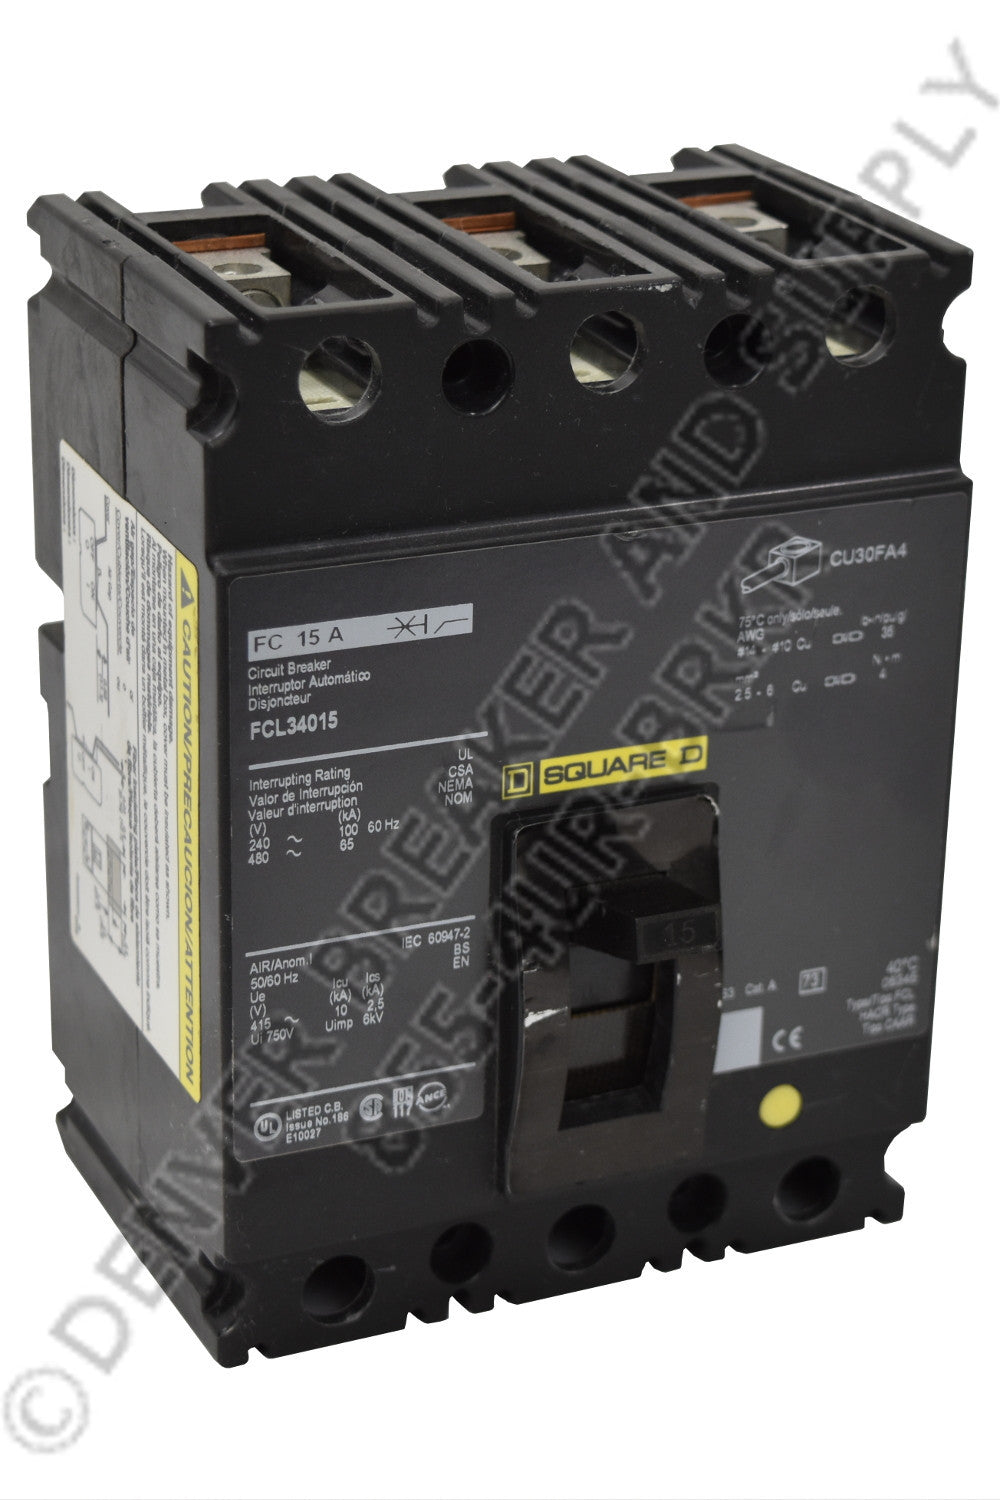 Square D FCP24045 Circuit Breakers